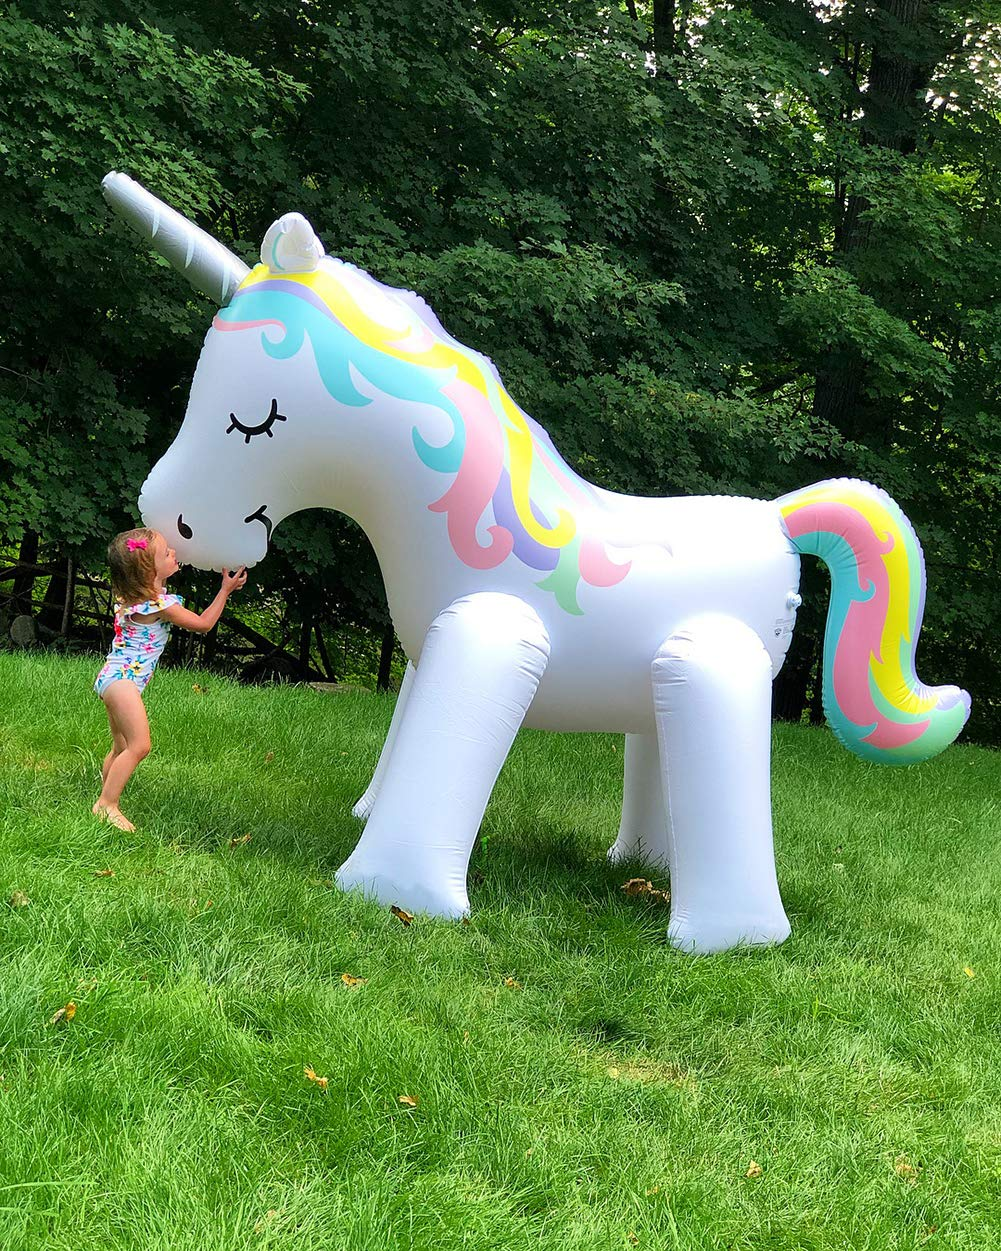 Kimi House Giant Inflatable Unicorn Sprinkler with Over 4.8 Feet Tall, 6.6Feet Long, Water Toys, Yard Summer Sprinkler… 6